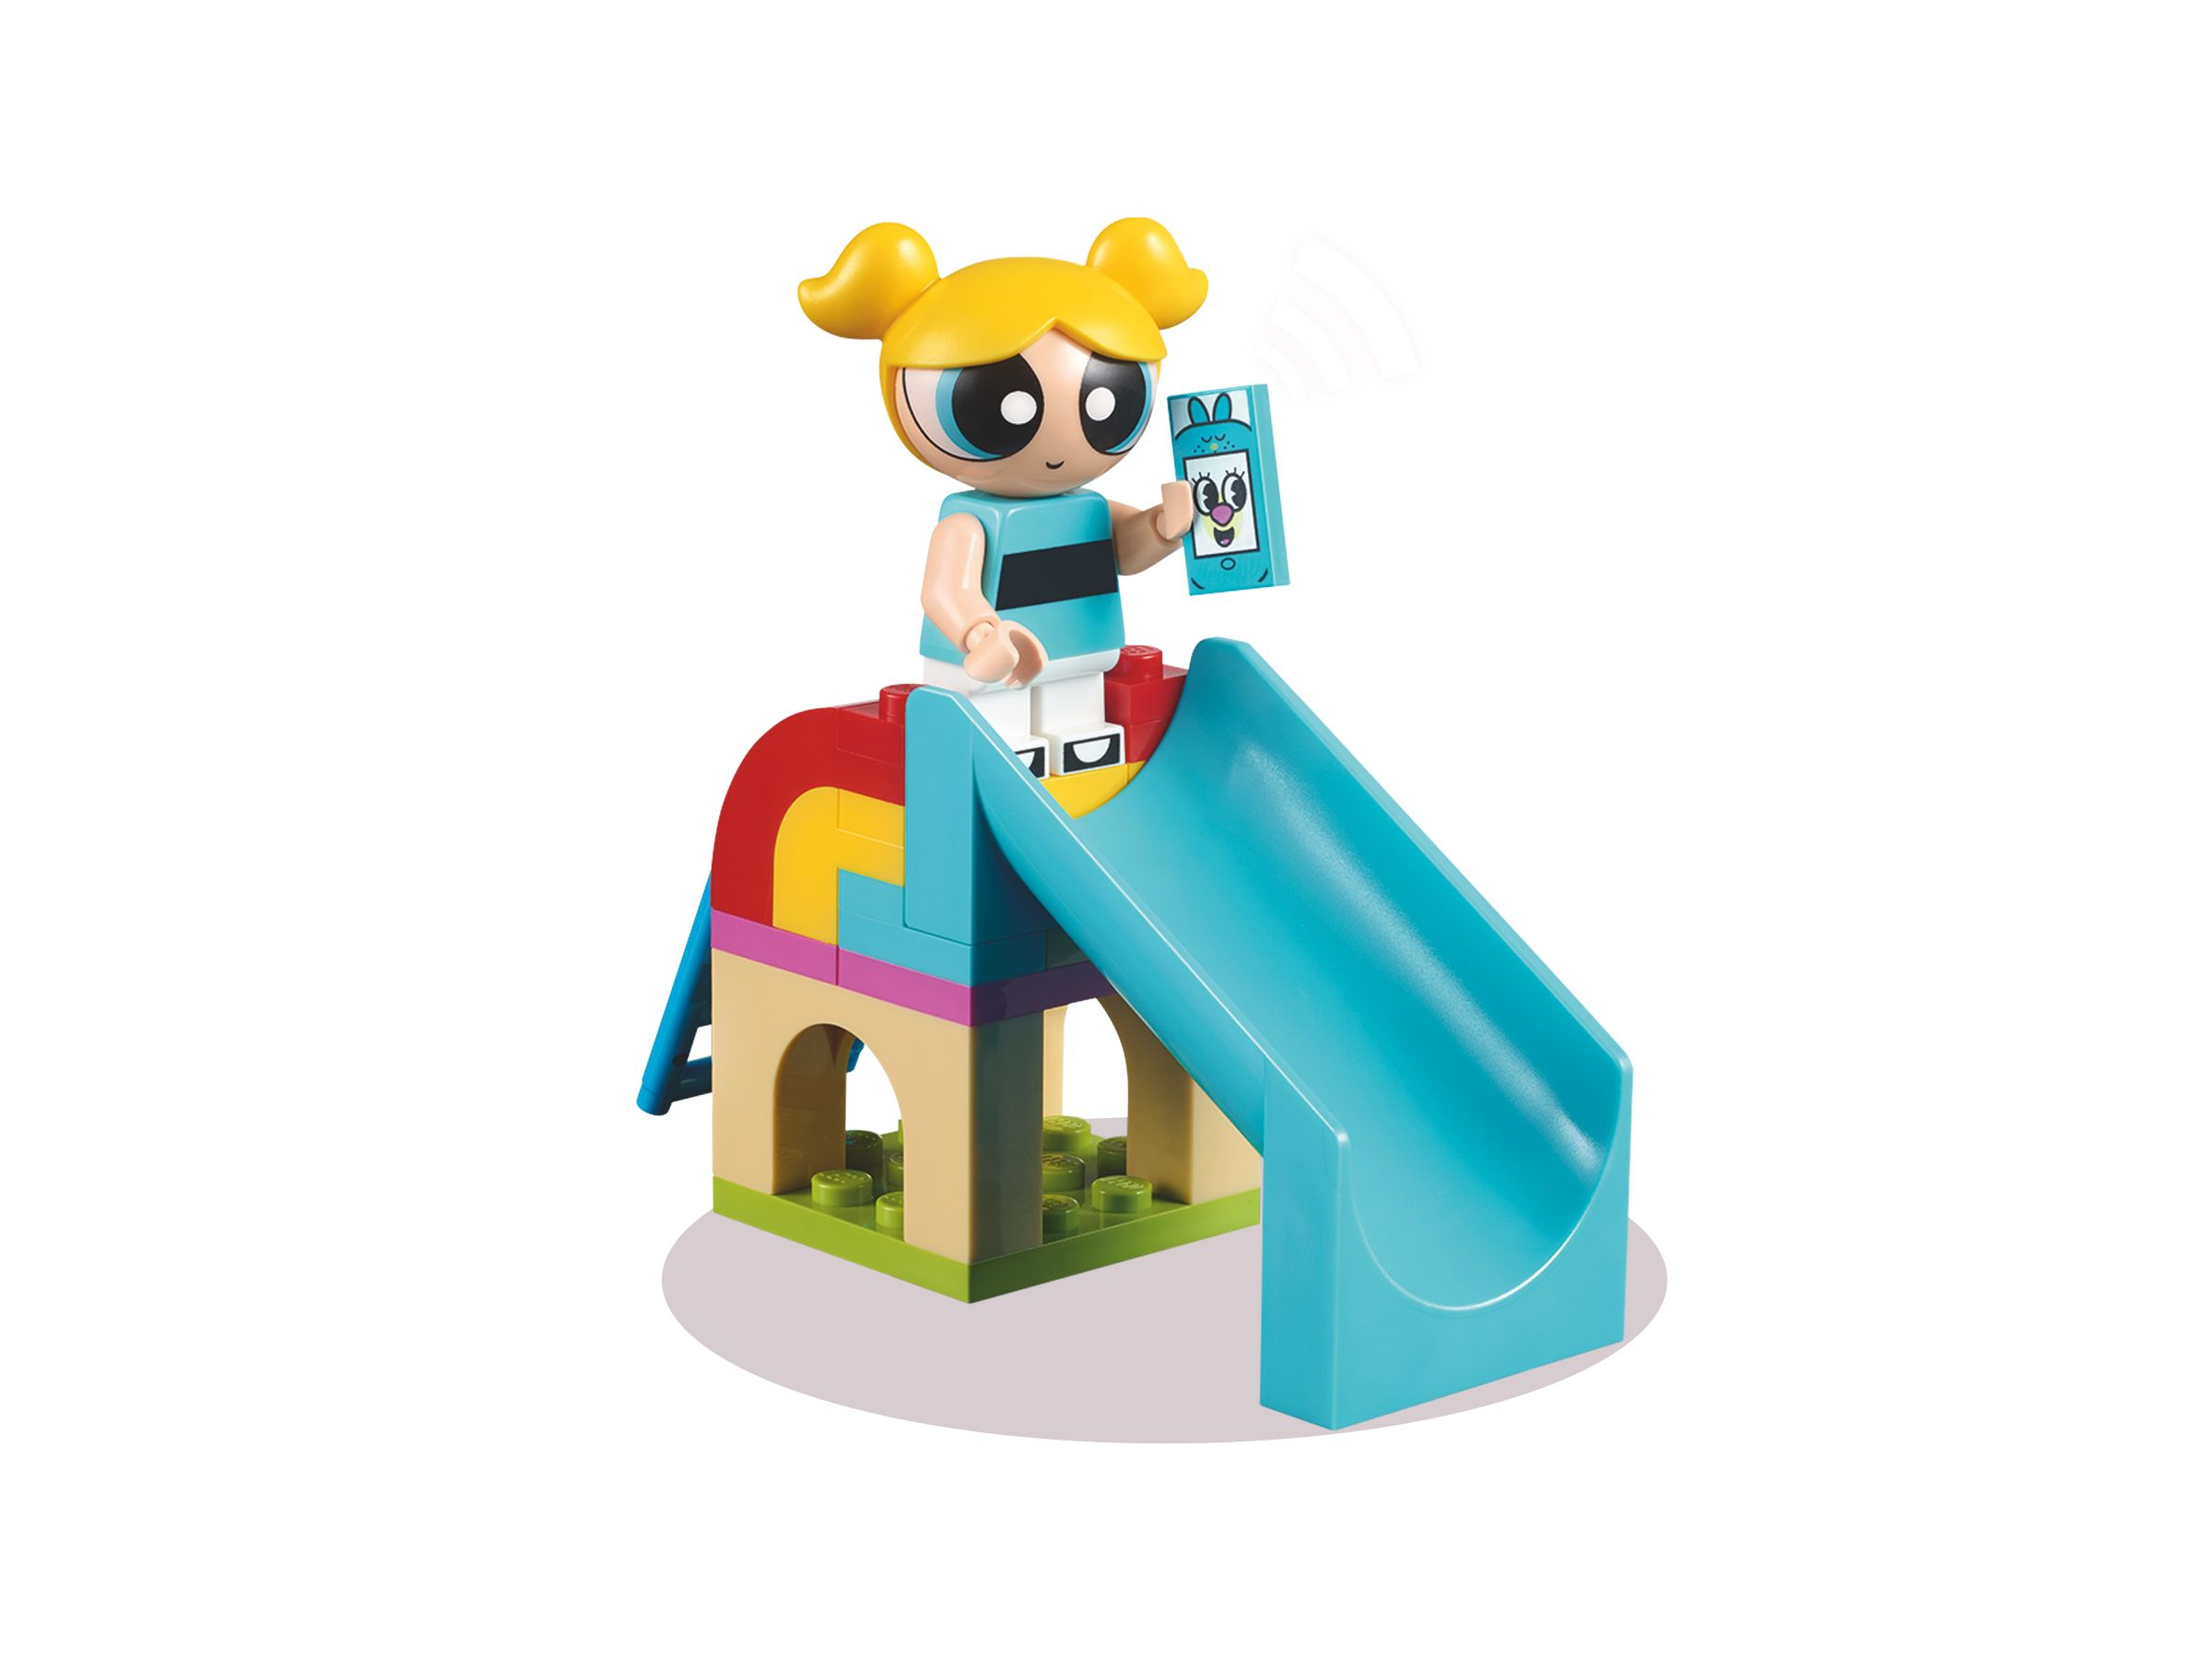 LEGO The Powerpuff Girls 41287 Bubbles' Spielplatzabenteuer LEGO_41287_alt3.jpg